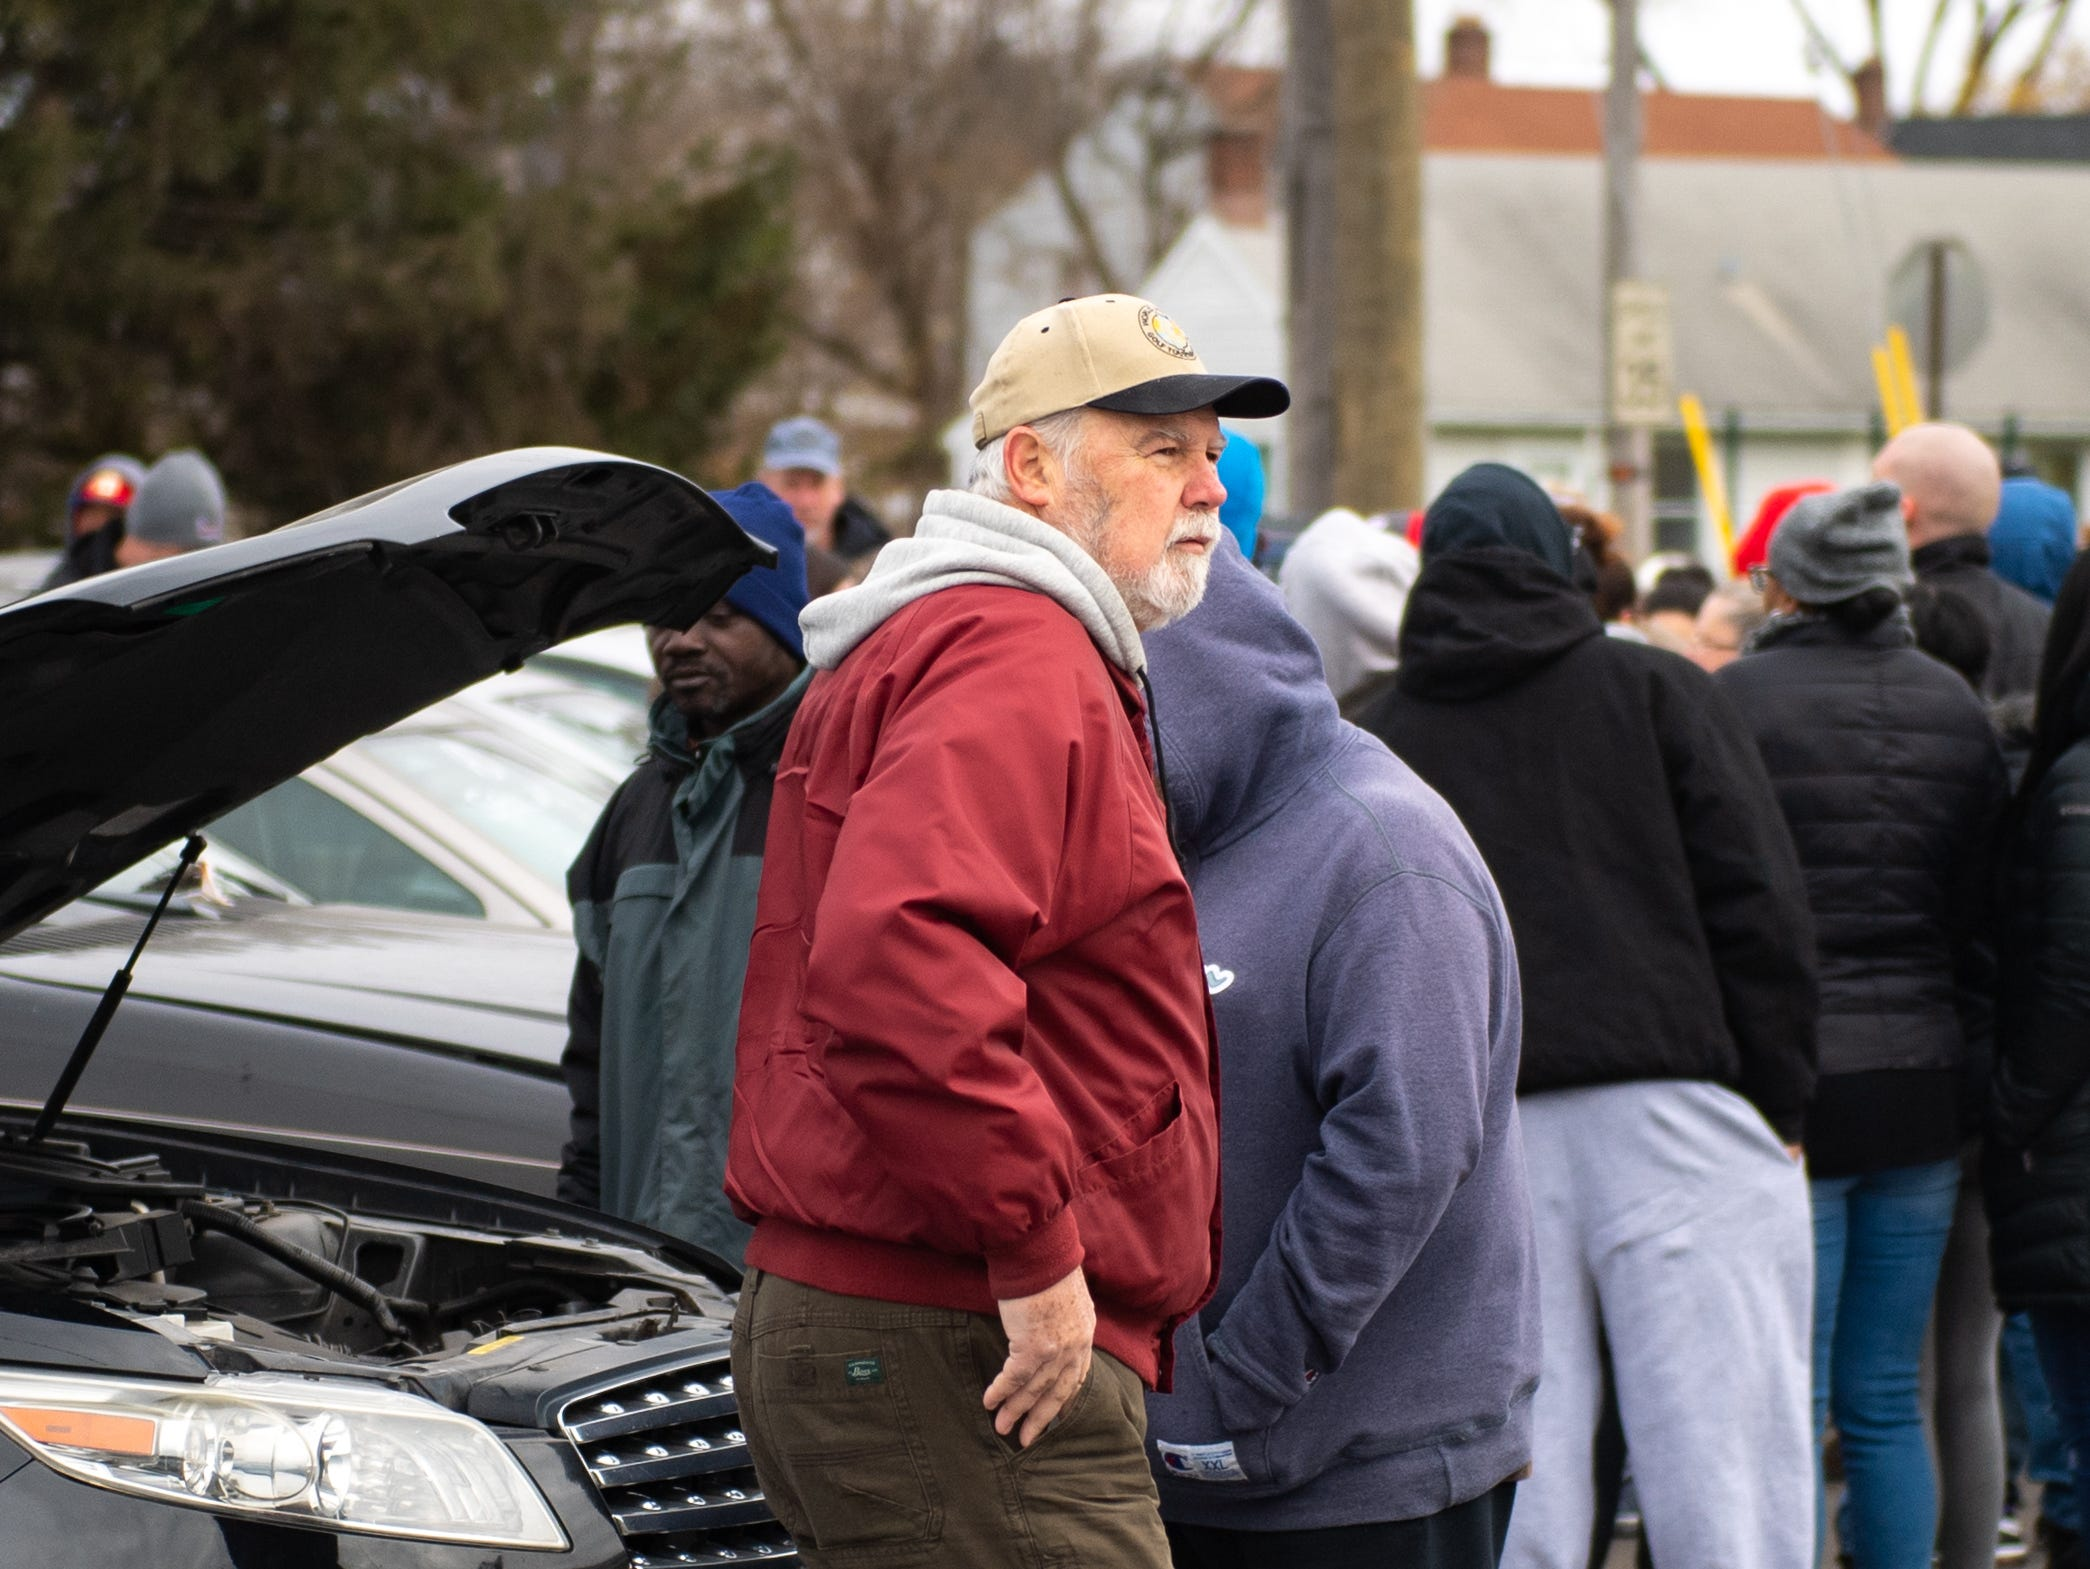 Bidders spend out around the lot meticulously looking at each car and getting a price in mind, November 23, 2018.